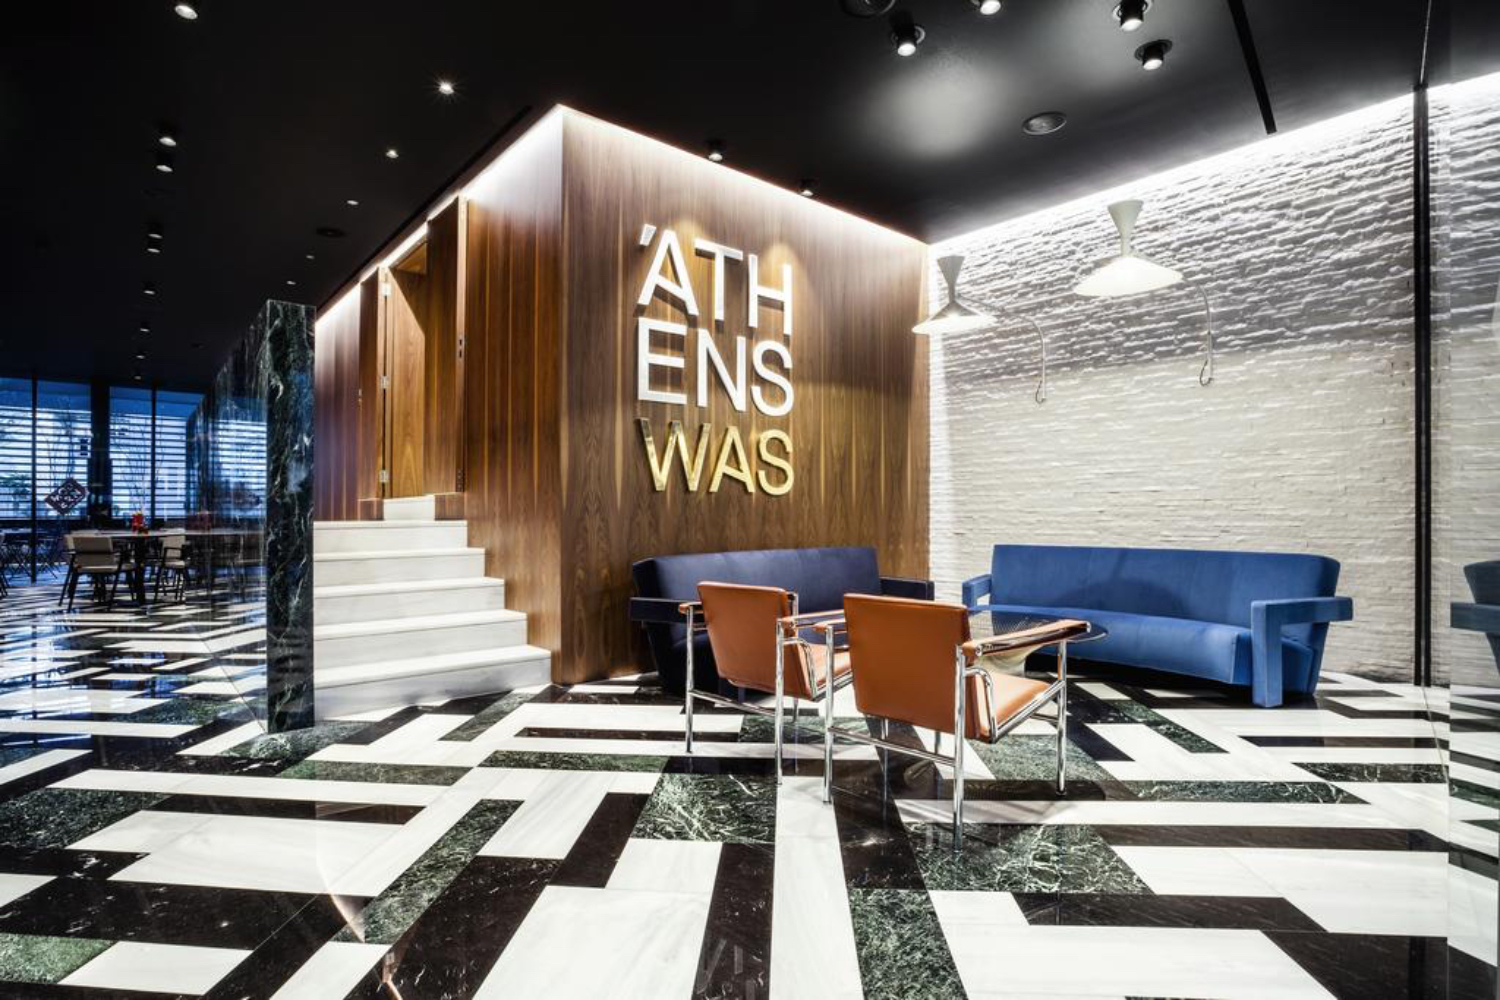 Hip and beautiful hotel in Athens – AthensWAS